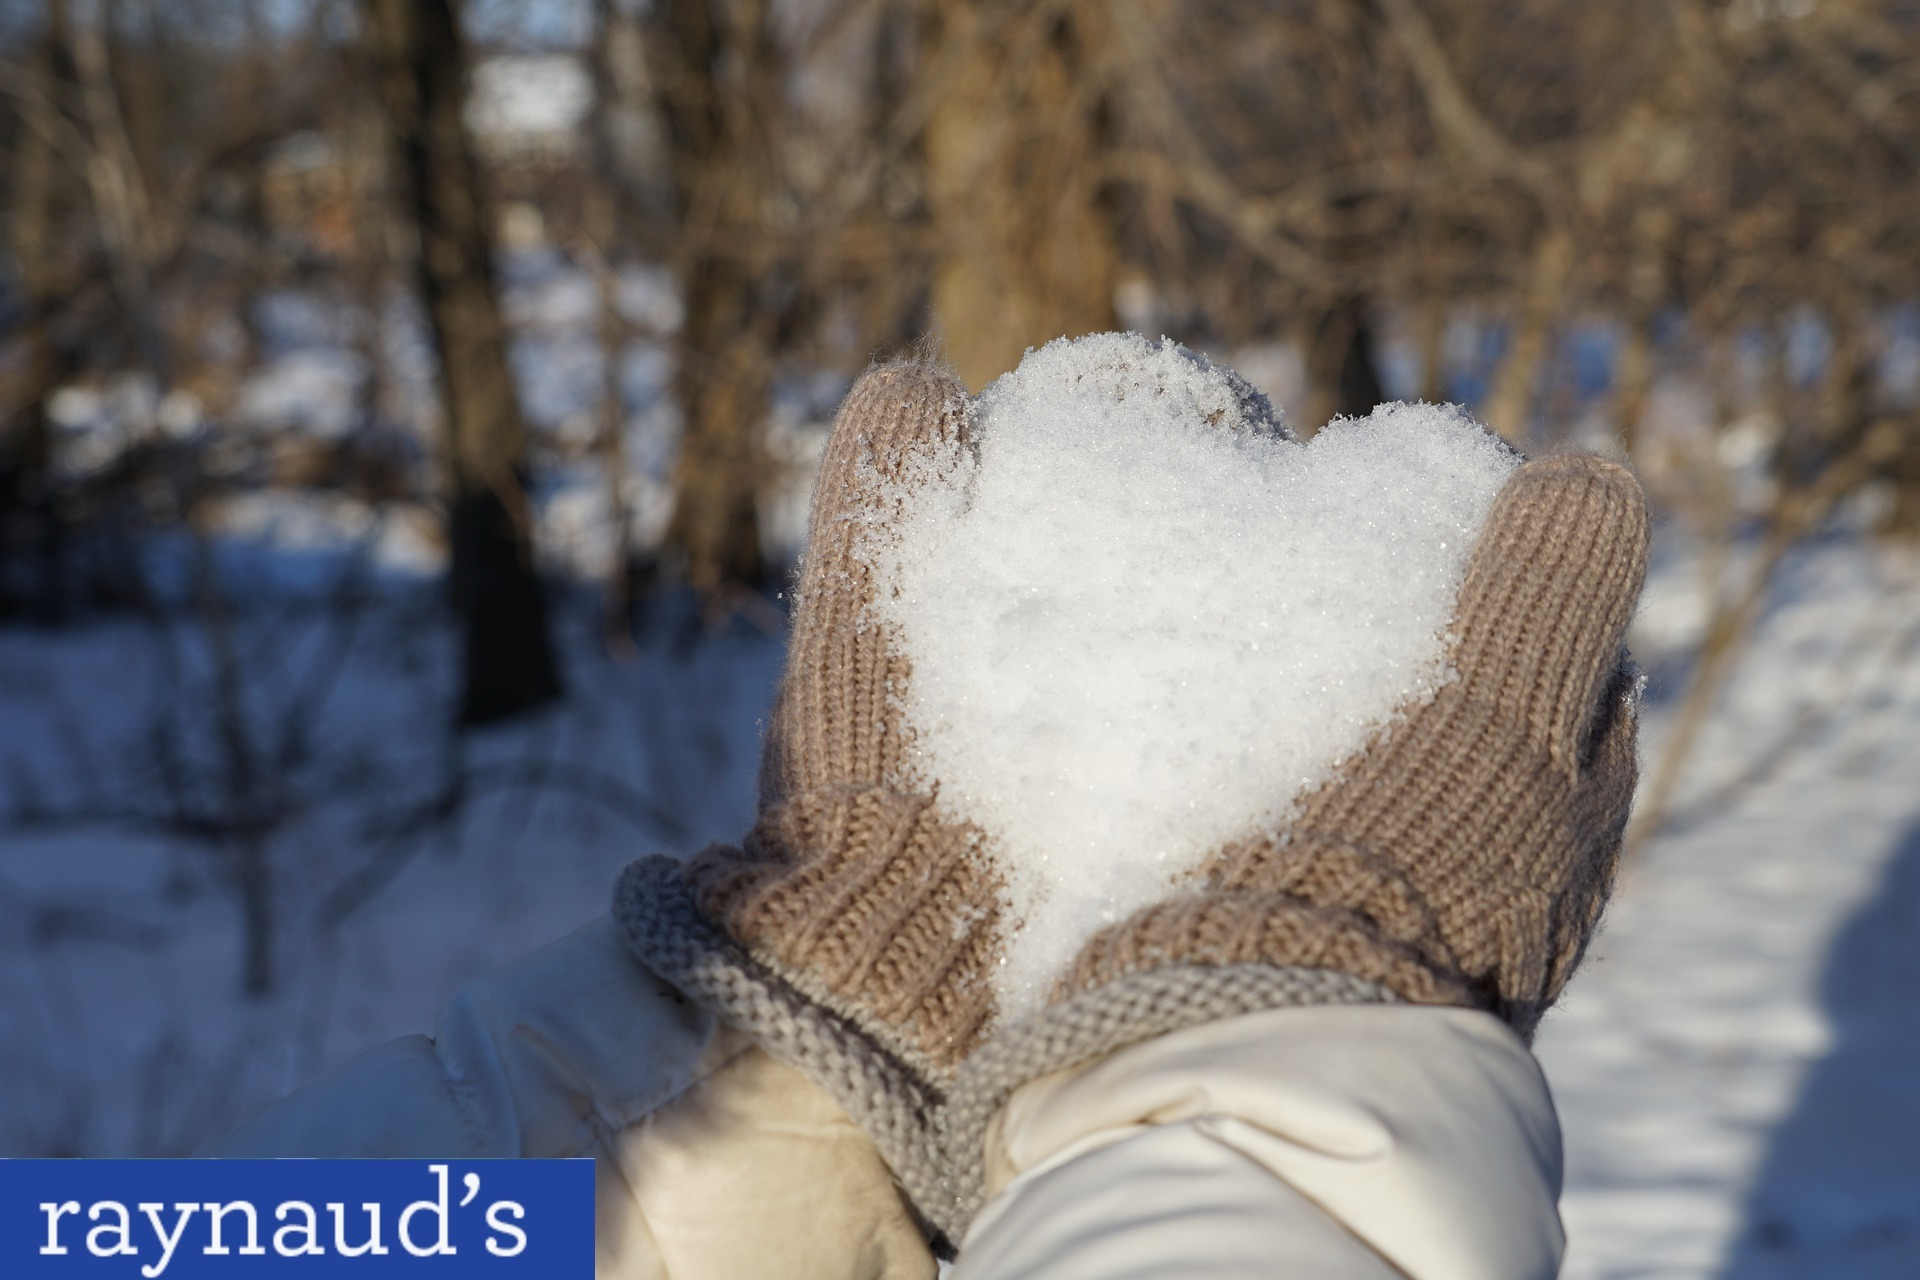 The Cold Truth: Raynaud's Phenomenon